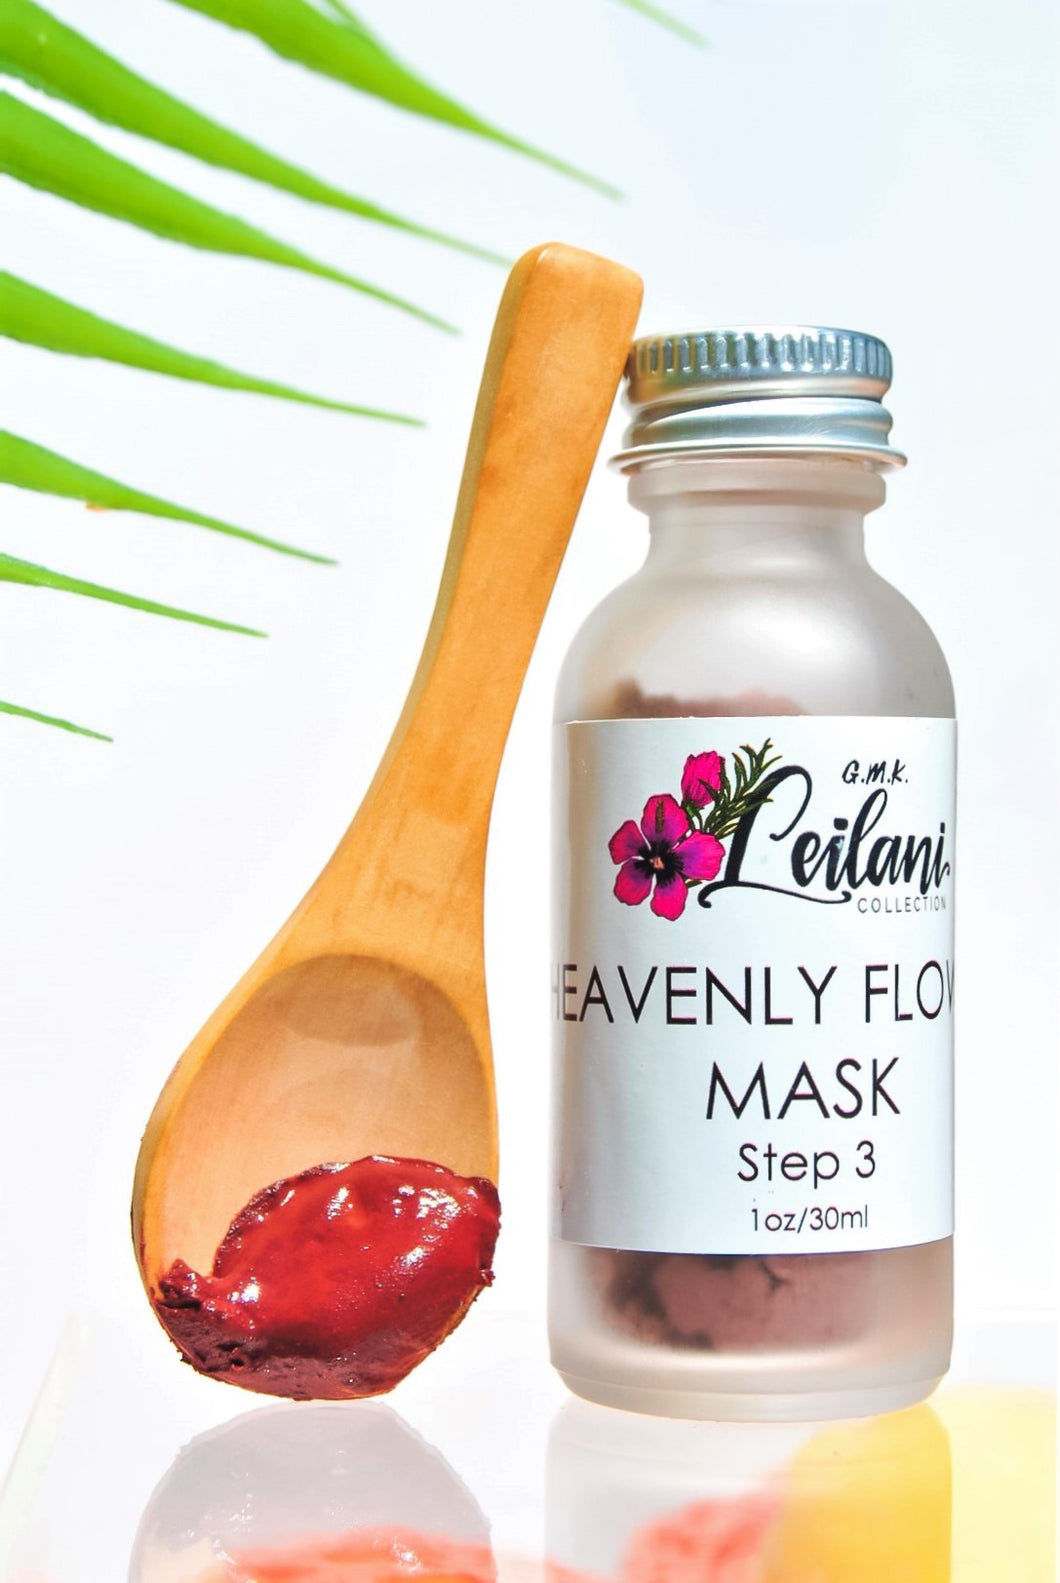 Heavenly Flower Mask